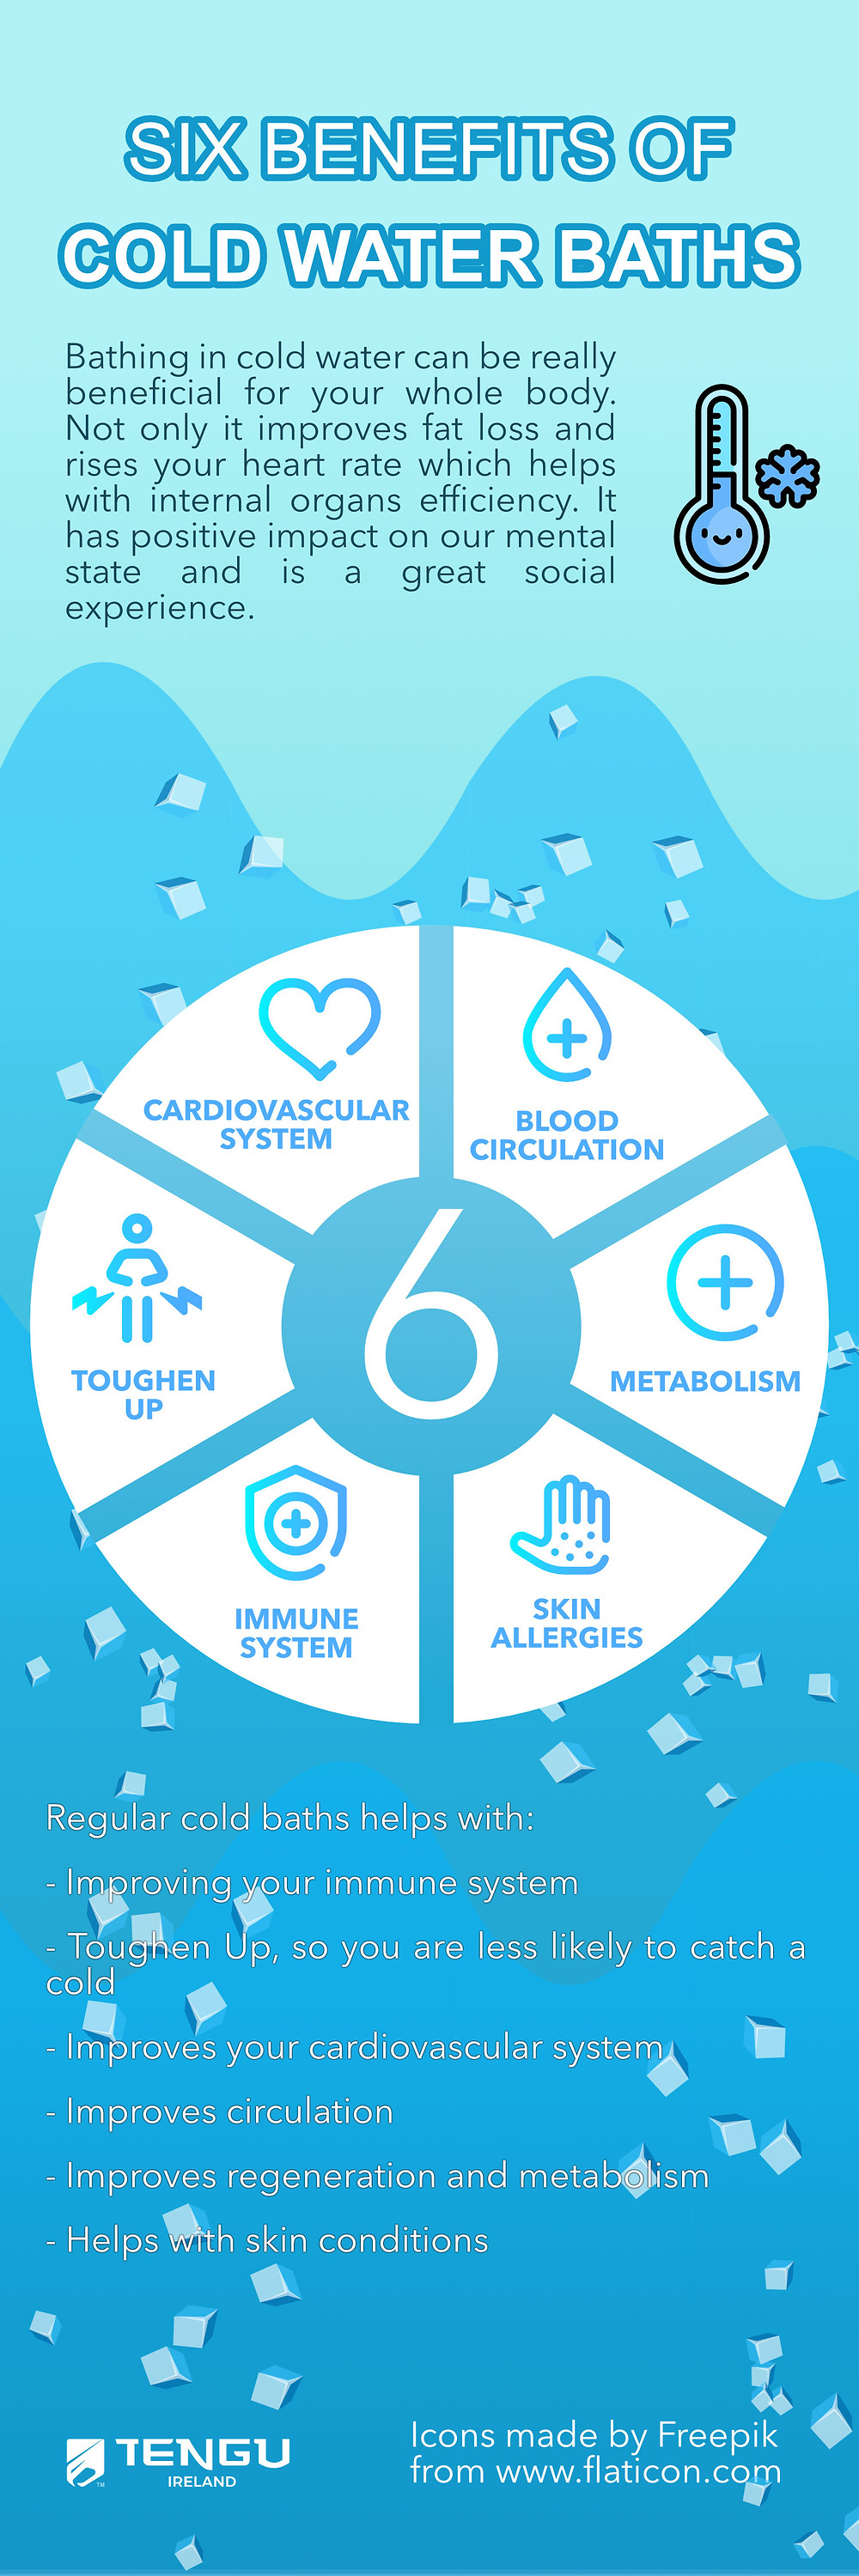 Six Benefits of Cold Water Baths Infographic